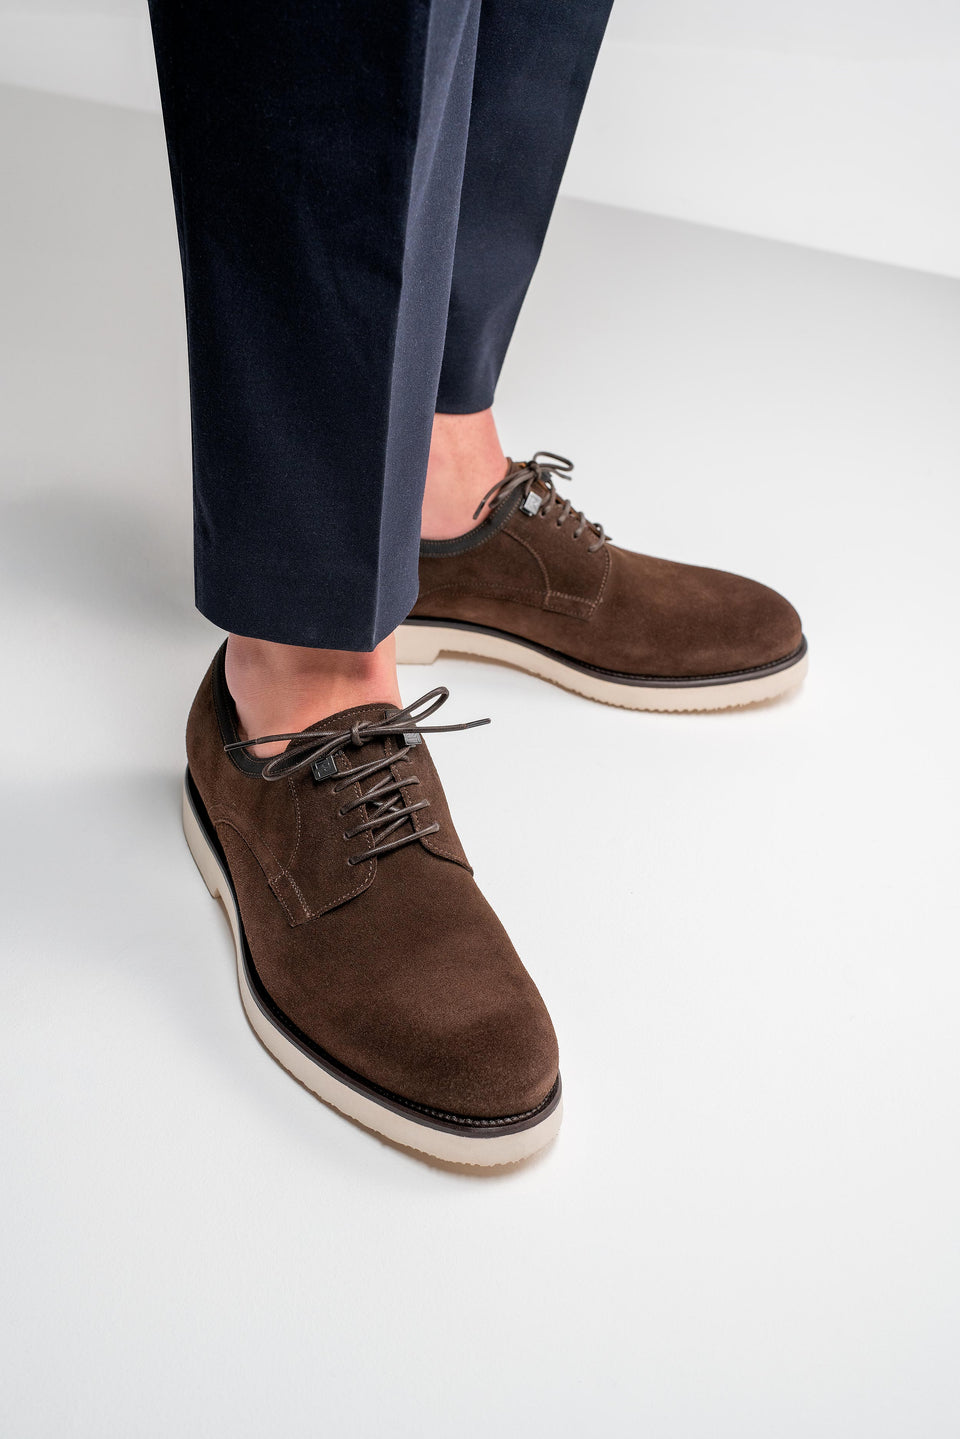 most comfortable brown suede shoes